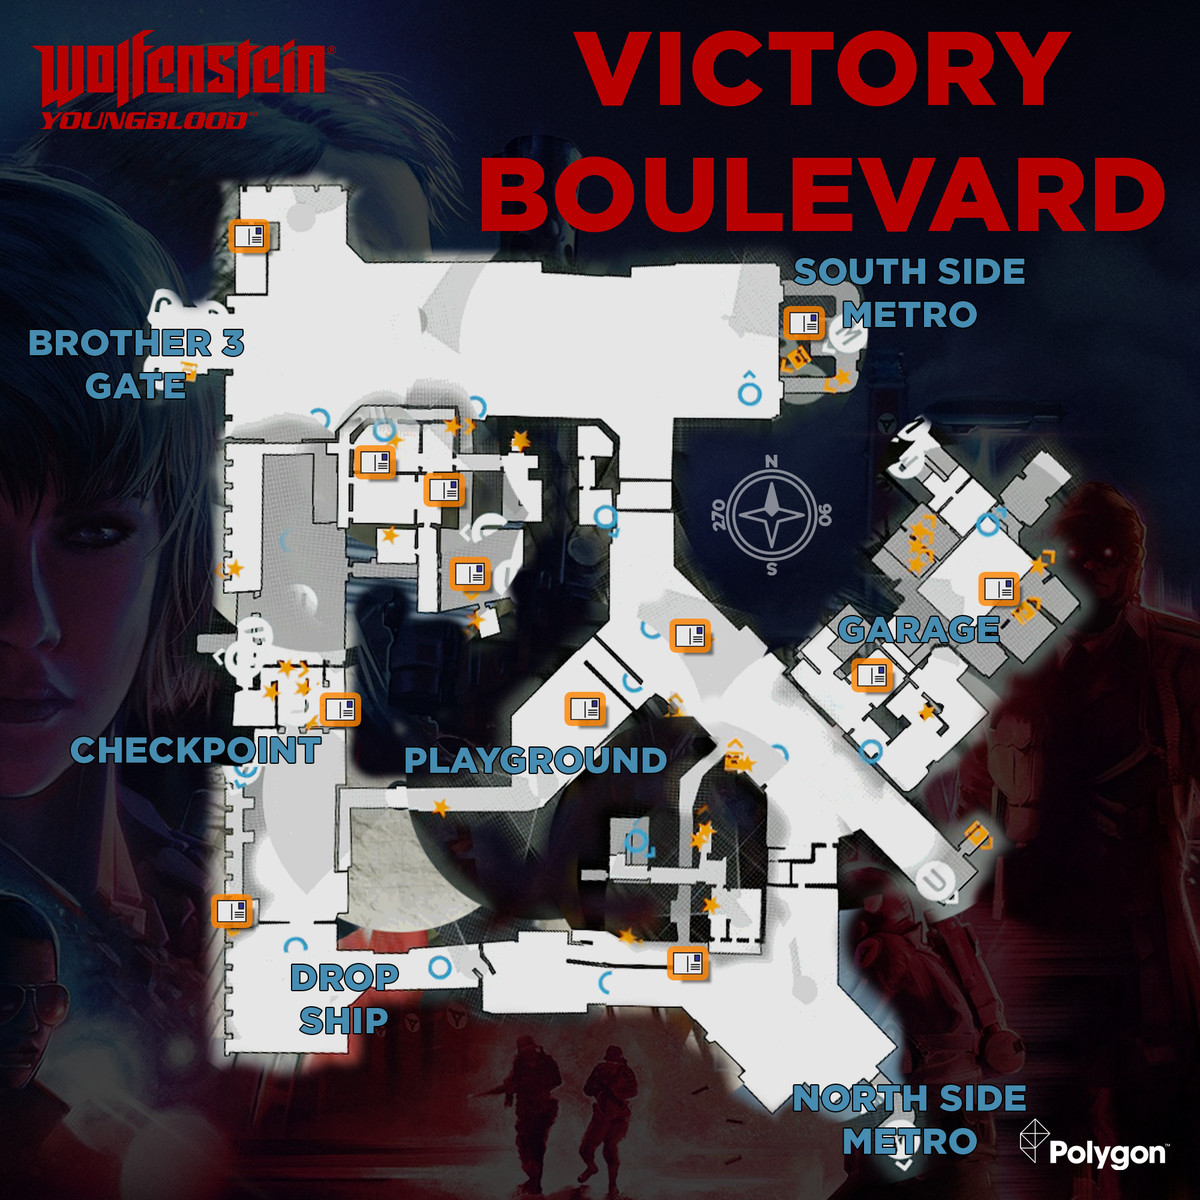 Wolfenstein: Youngblood Victory Boulevard map with Readables icons